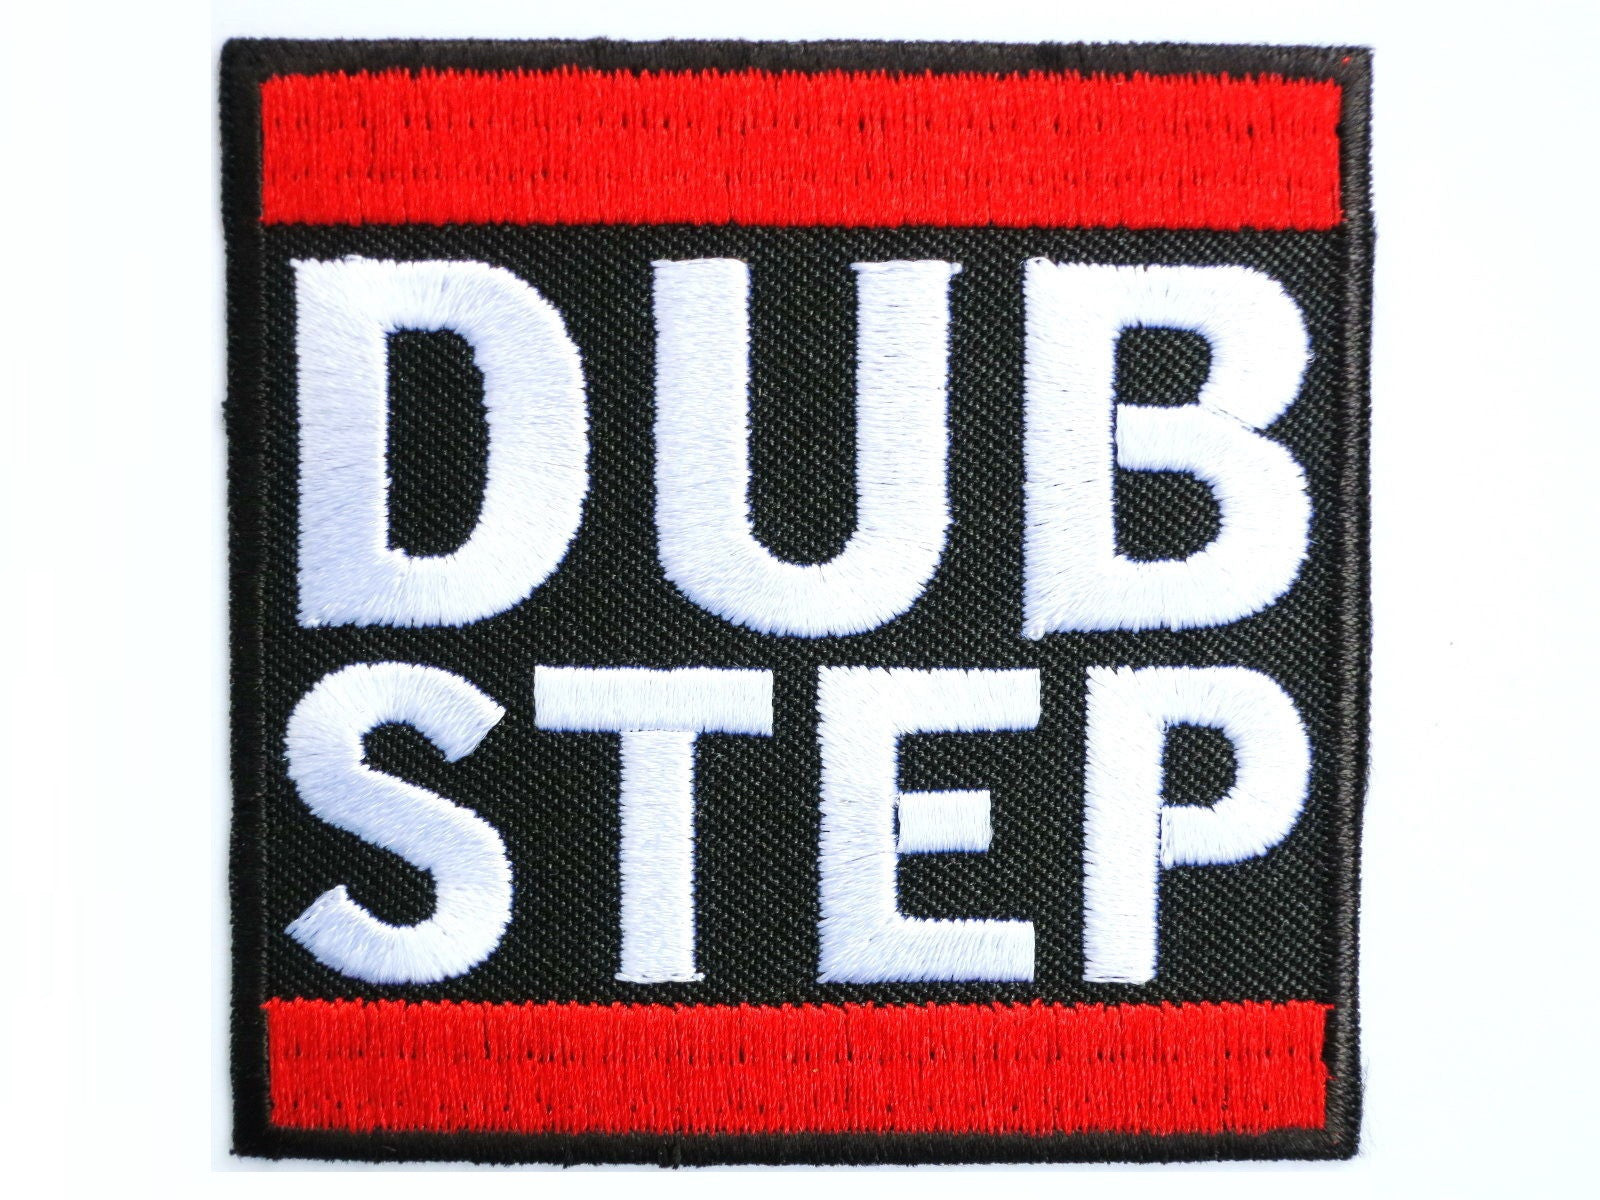 "DUB STEP Electro Dance DnB Drum Bass Iron On Sew On Embroidered Patch 2.7""/7cm - A Patch E Store"